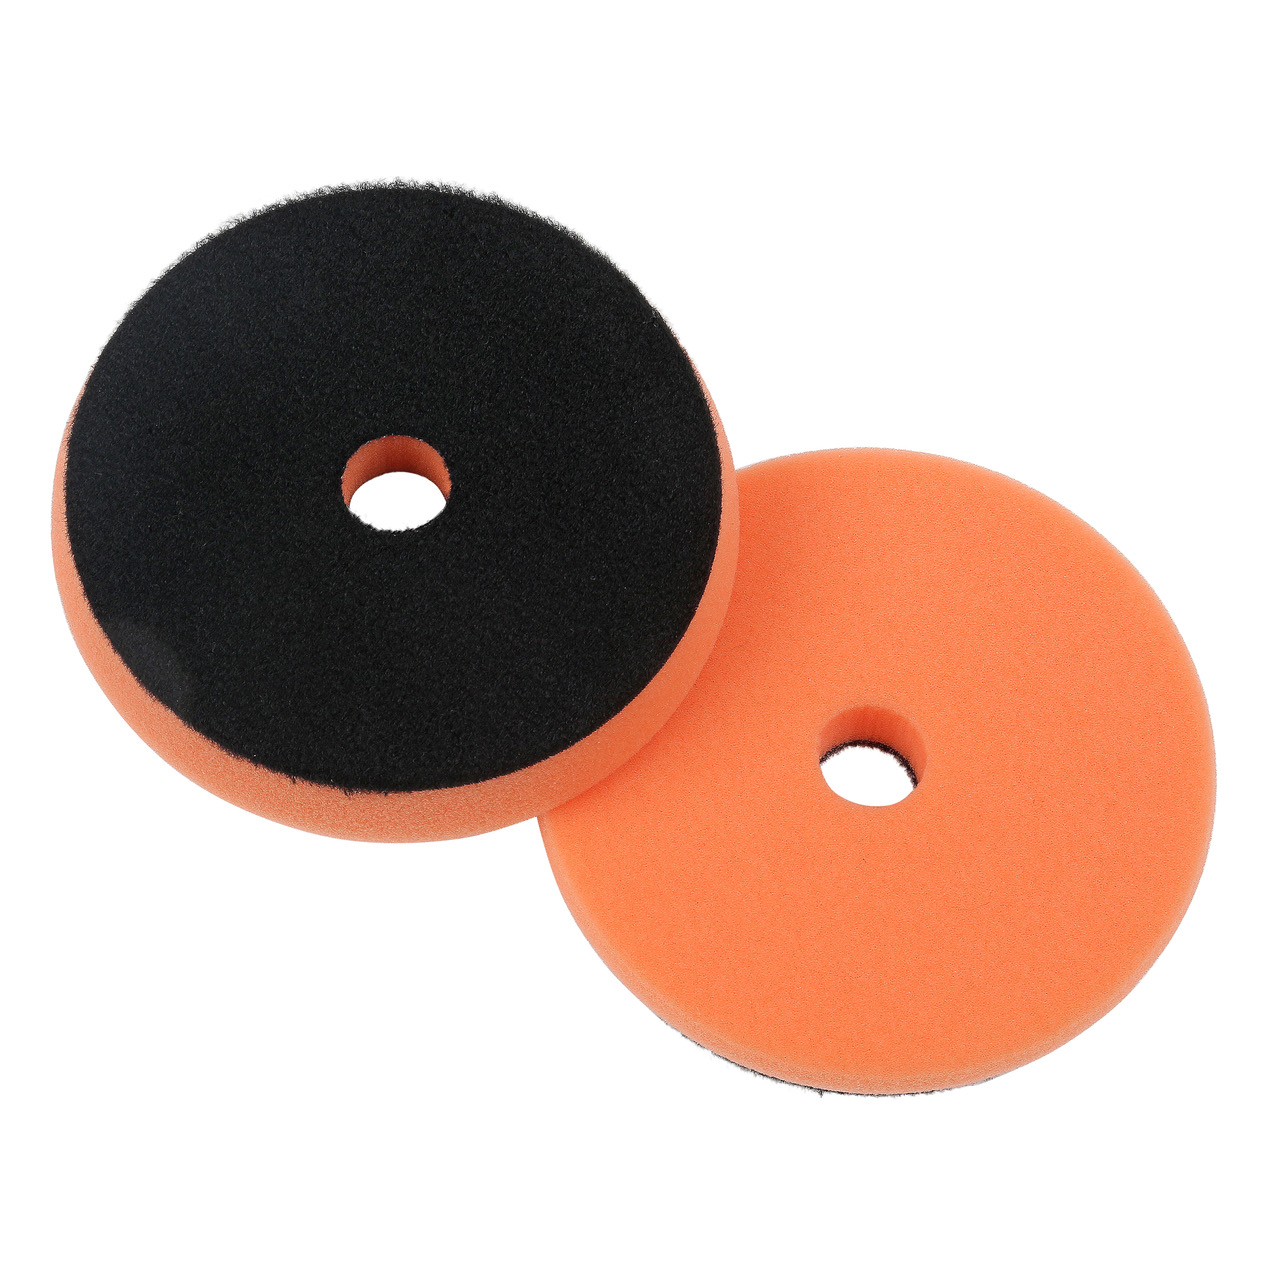 "Orange Velcro Black Blue Lake Country 6 1//2/"" SDO Foam Pad Kit- FREE SHIPPING!"